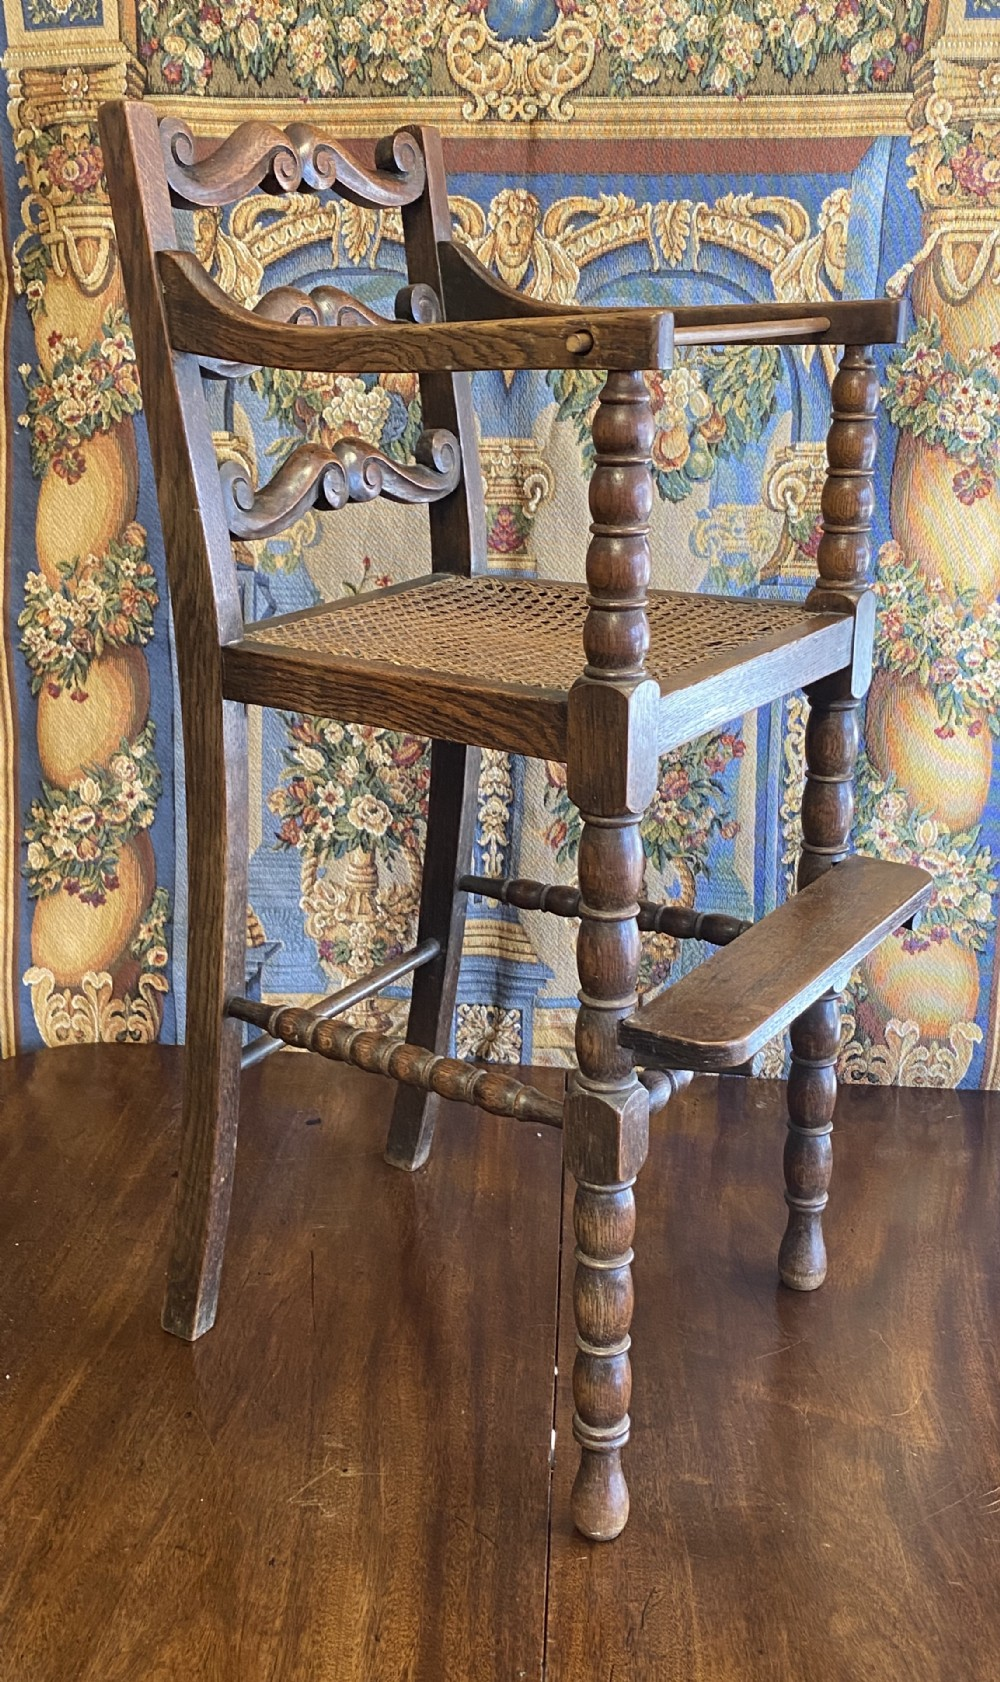 c19th childs high chair